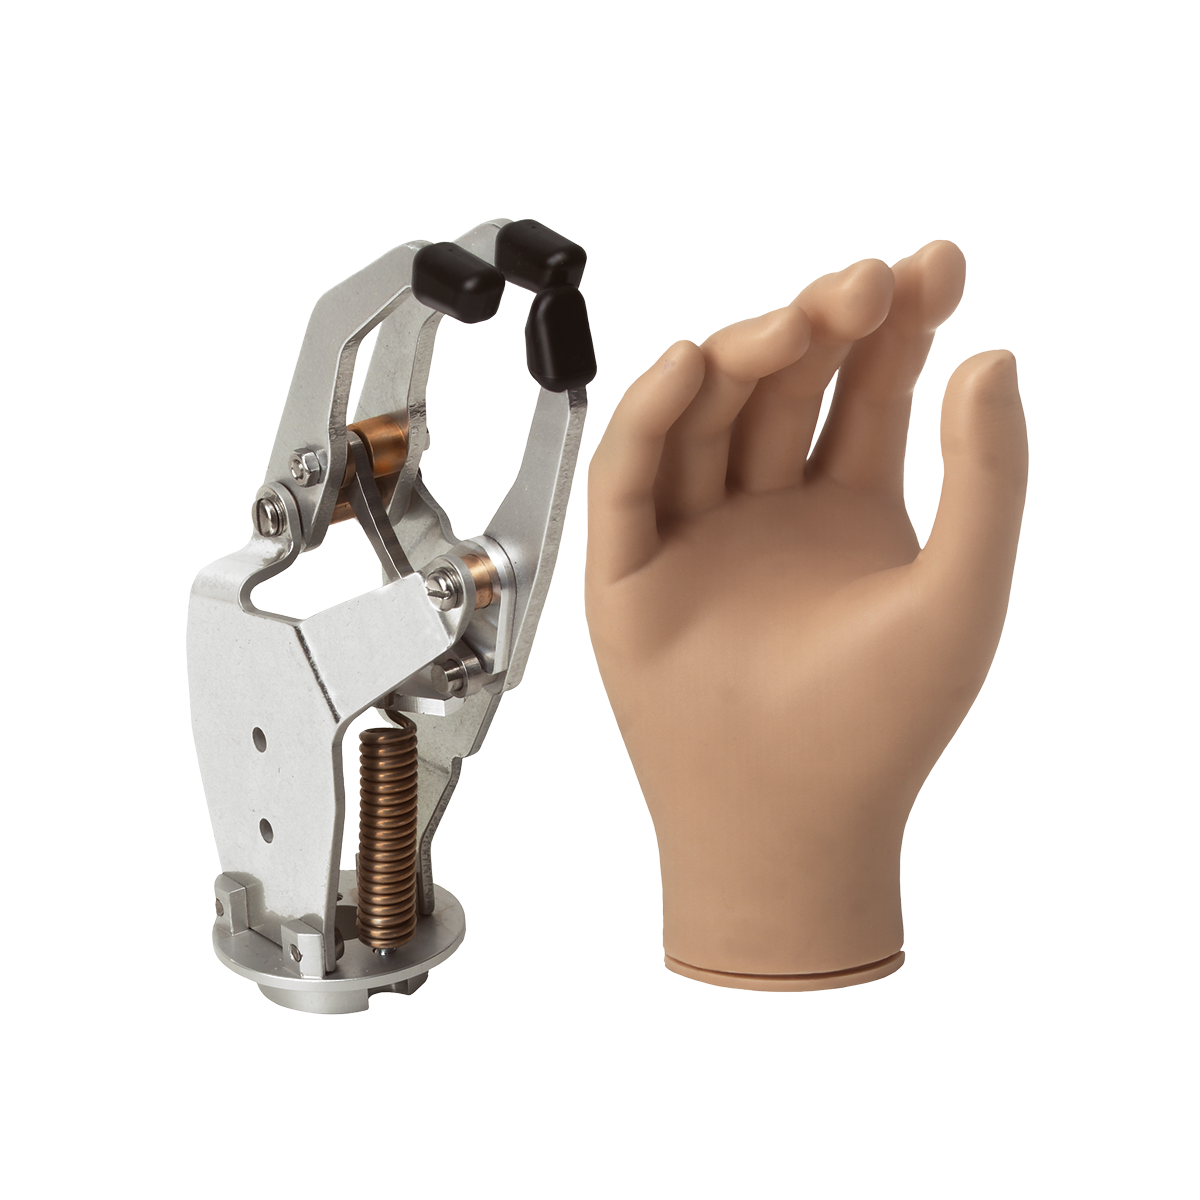 Spring Operated Hand